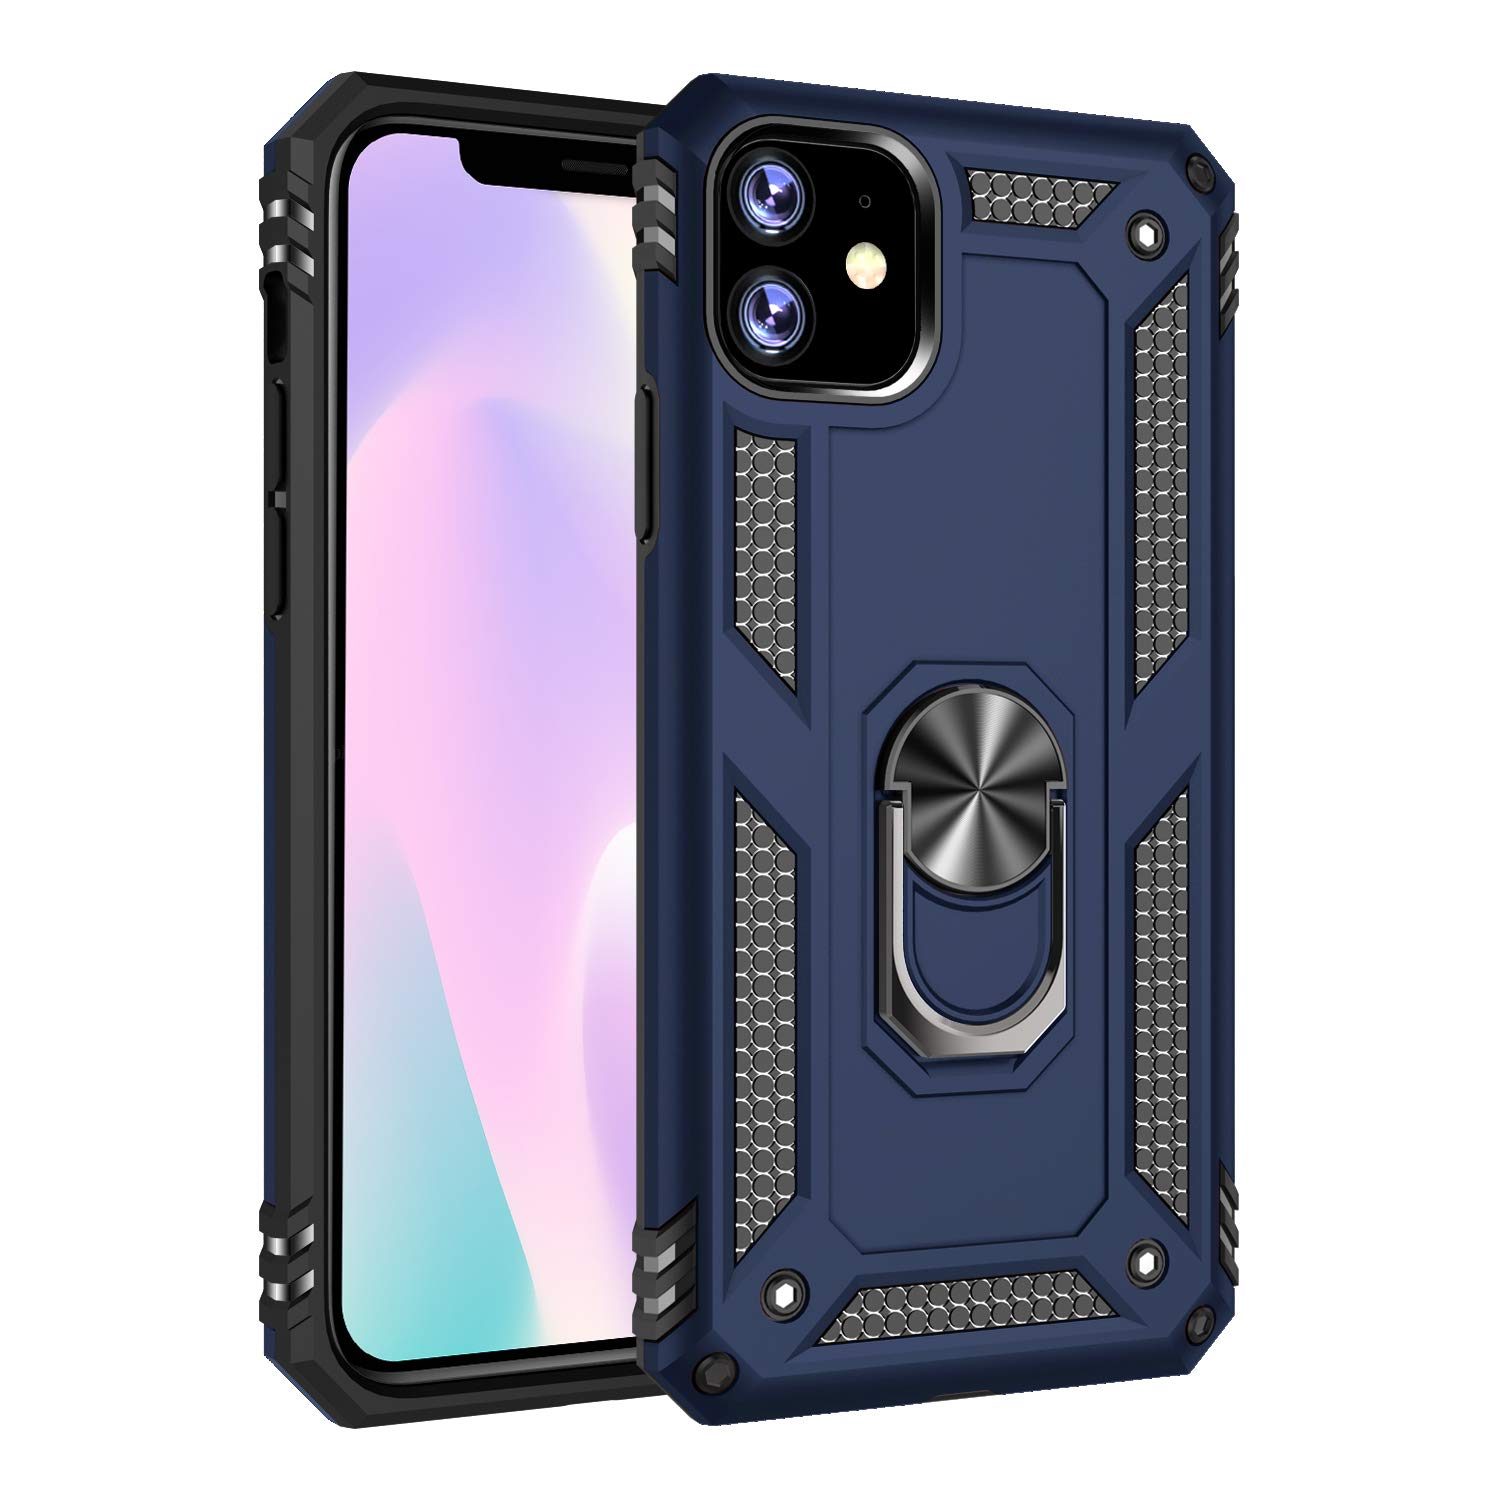 iPhone 11 (iPhone 2019 6.1 Inch) Case, Futanwei Military Grade Rugged Armor Shockproof Phone Case with Metal Finger Ring Kickstand [Fit Magnetic Car Mount] for Apple iPhone 11 2019, Blue by Futanwei